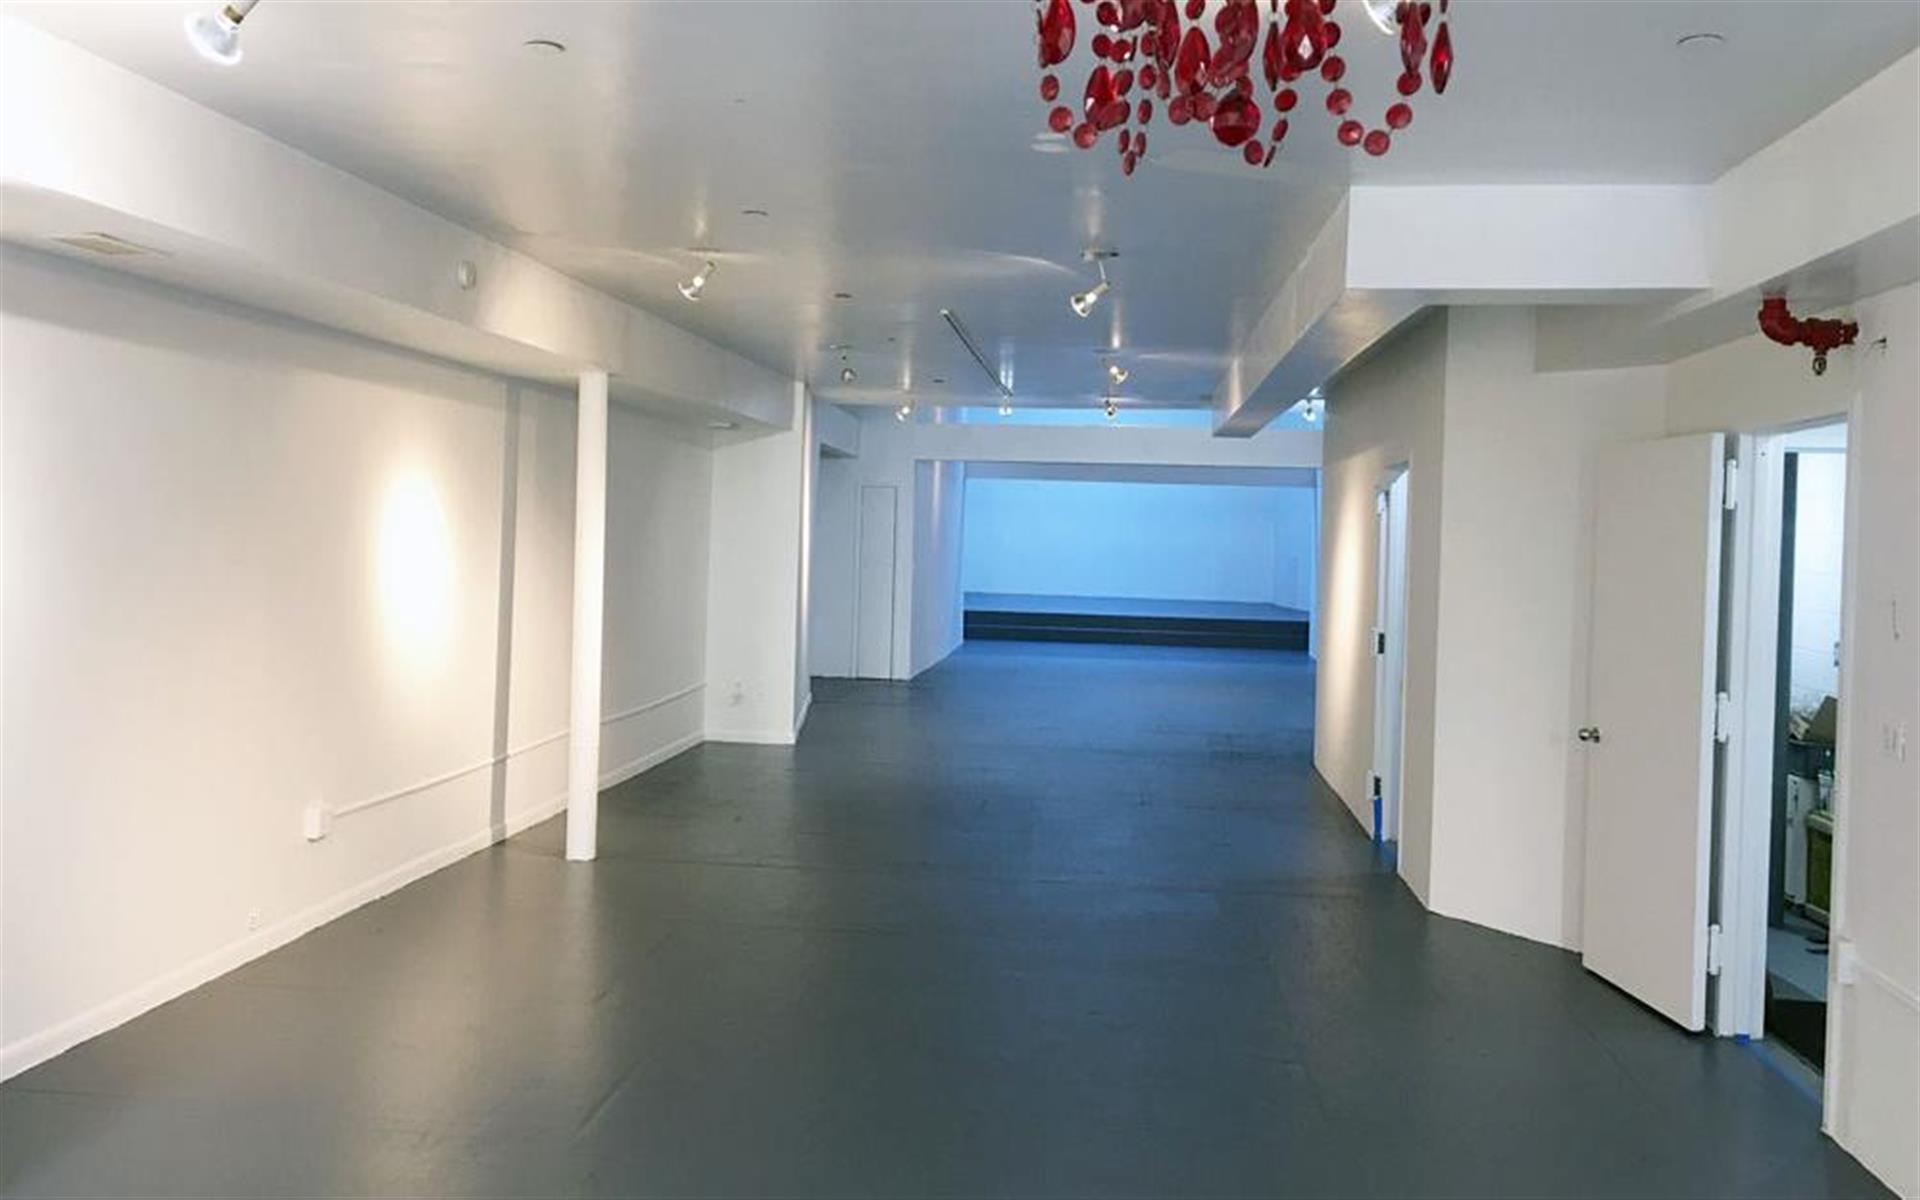 76 Wooster St | SoHo NYC - Team Office | 2nd Level